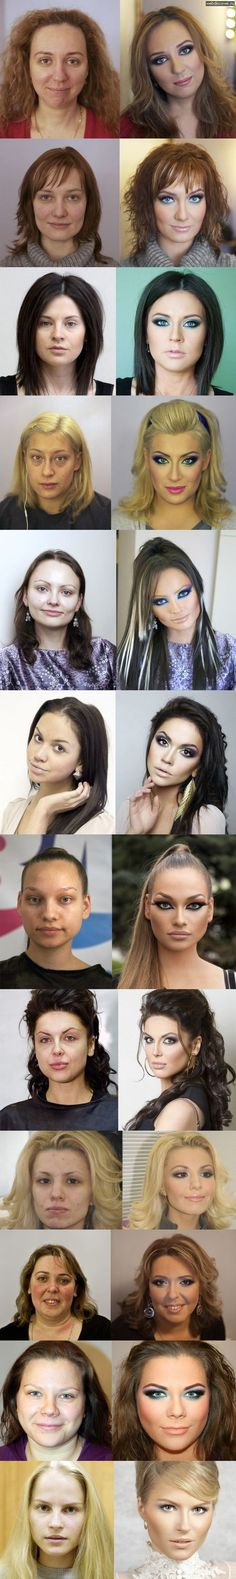 - Make up before and after